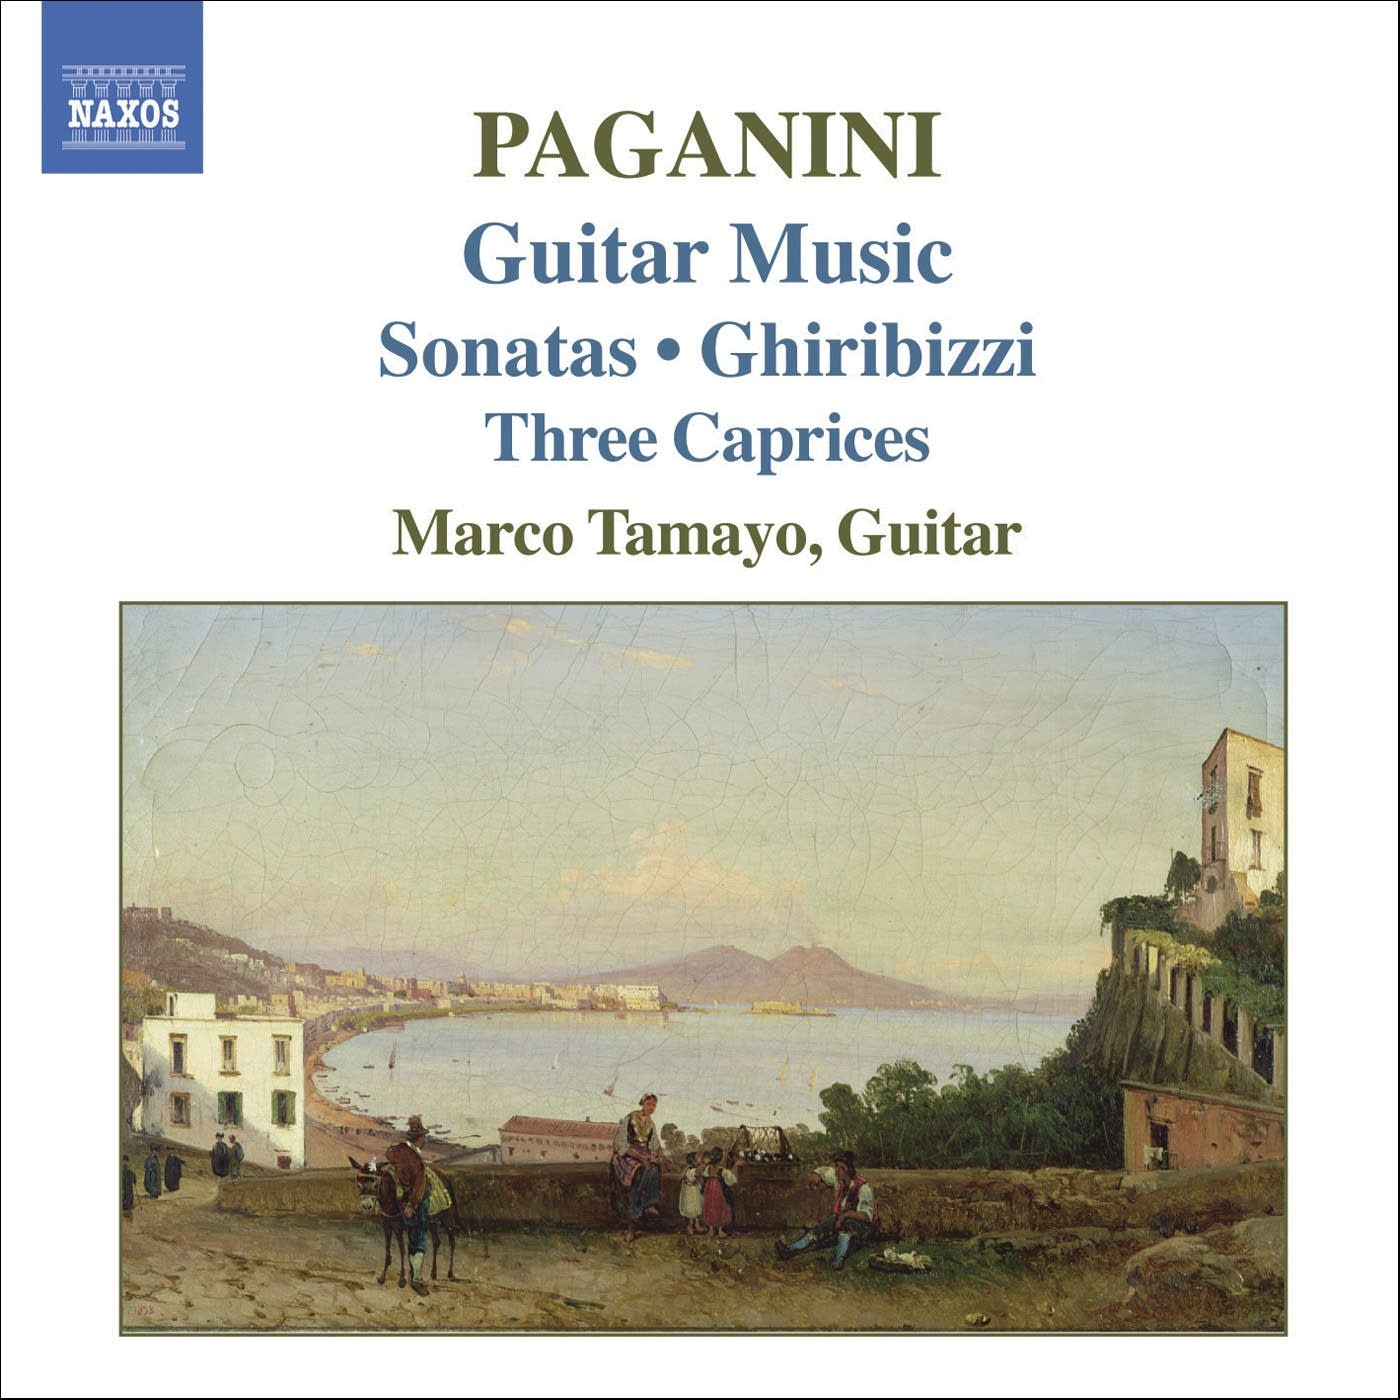 Nicolo Paganini - Grand Sonata in A: I. Allegro risoluto